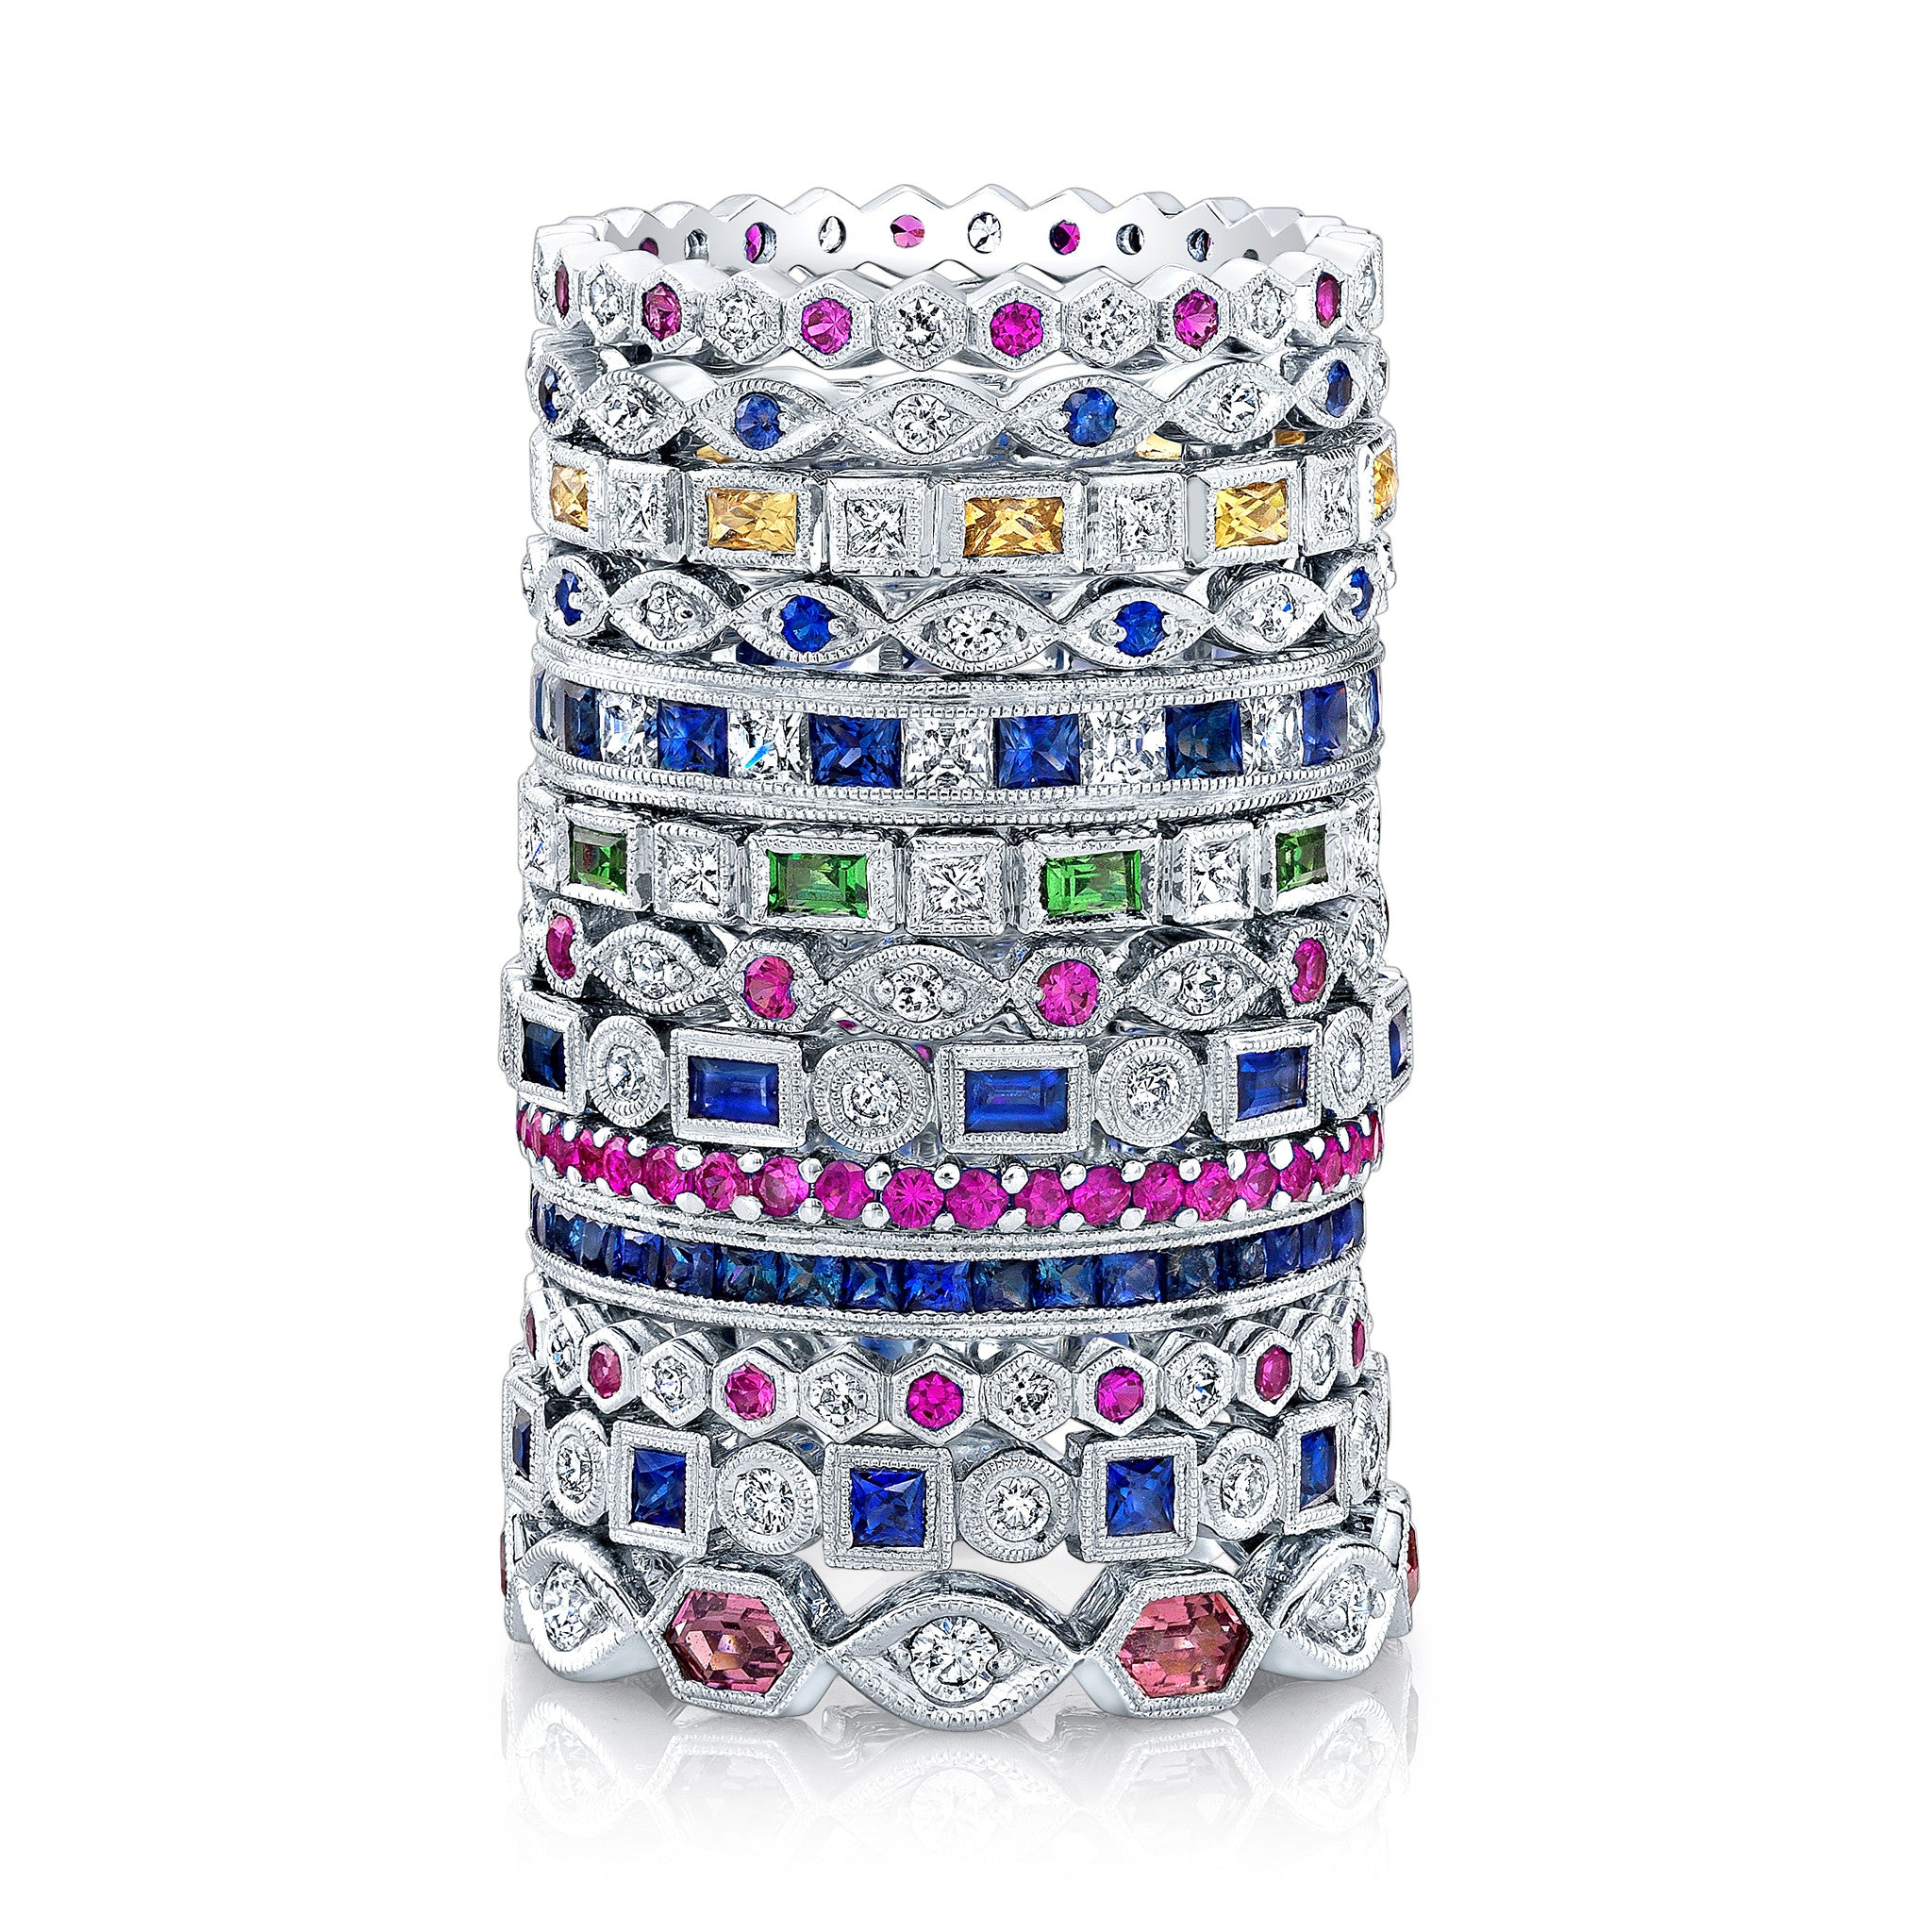 eternity pink band diamond and gold naples ii white sapphire estate cento bands roberto coin